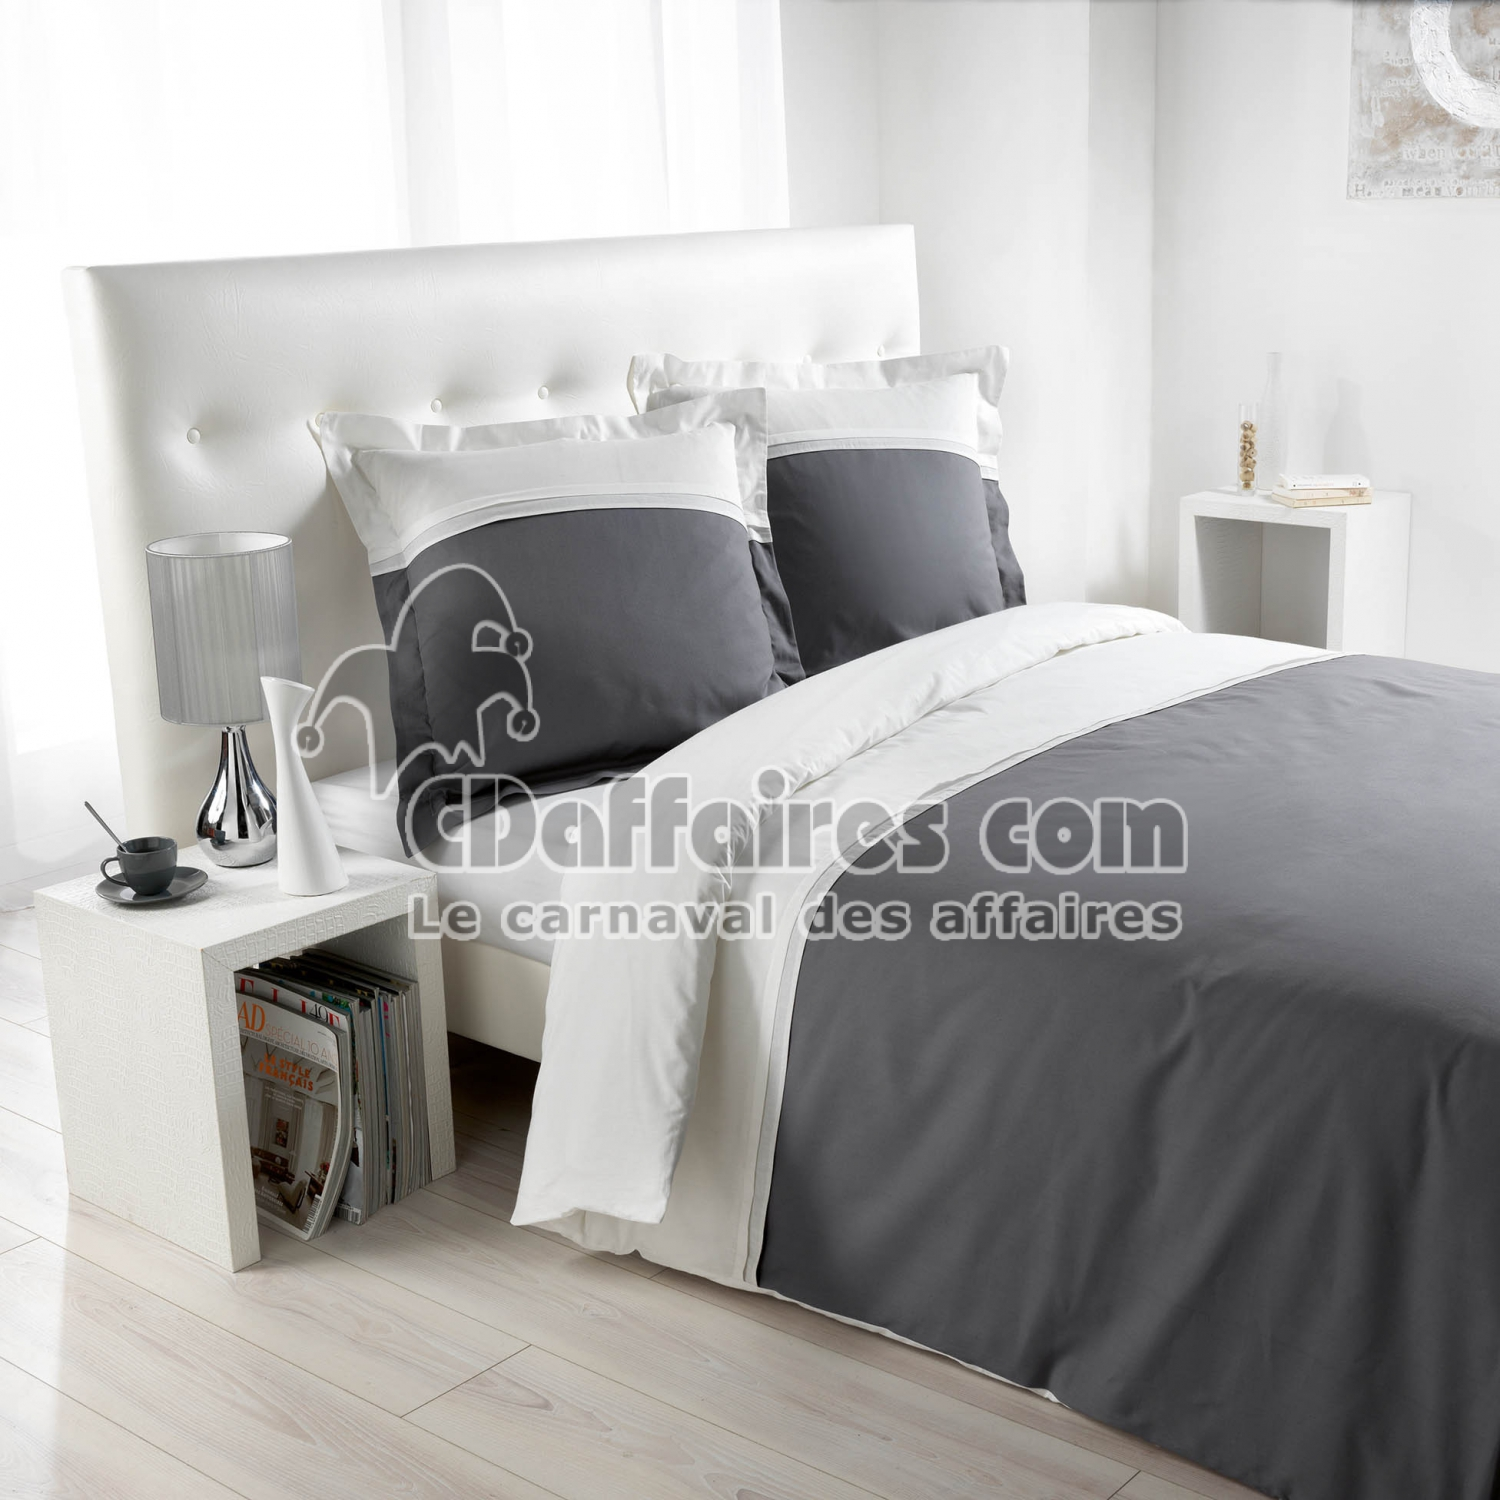 parure 3 p 240 x 220 cm plis religieuses bic 57 fils duoline blanc gris cdaffaires. Black Bedroom Furniture Sets. Home Design Ideas